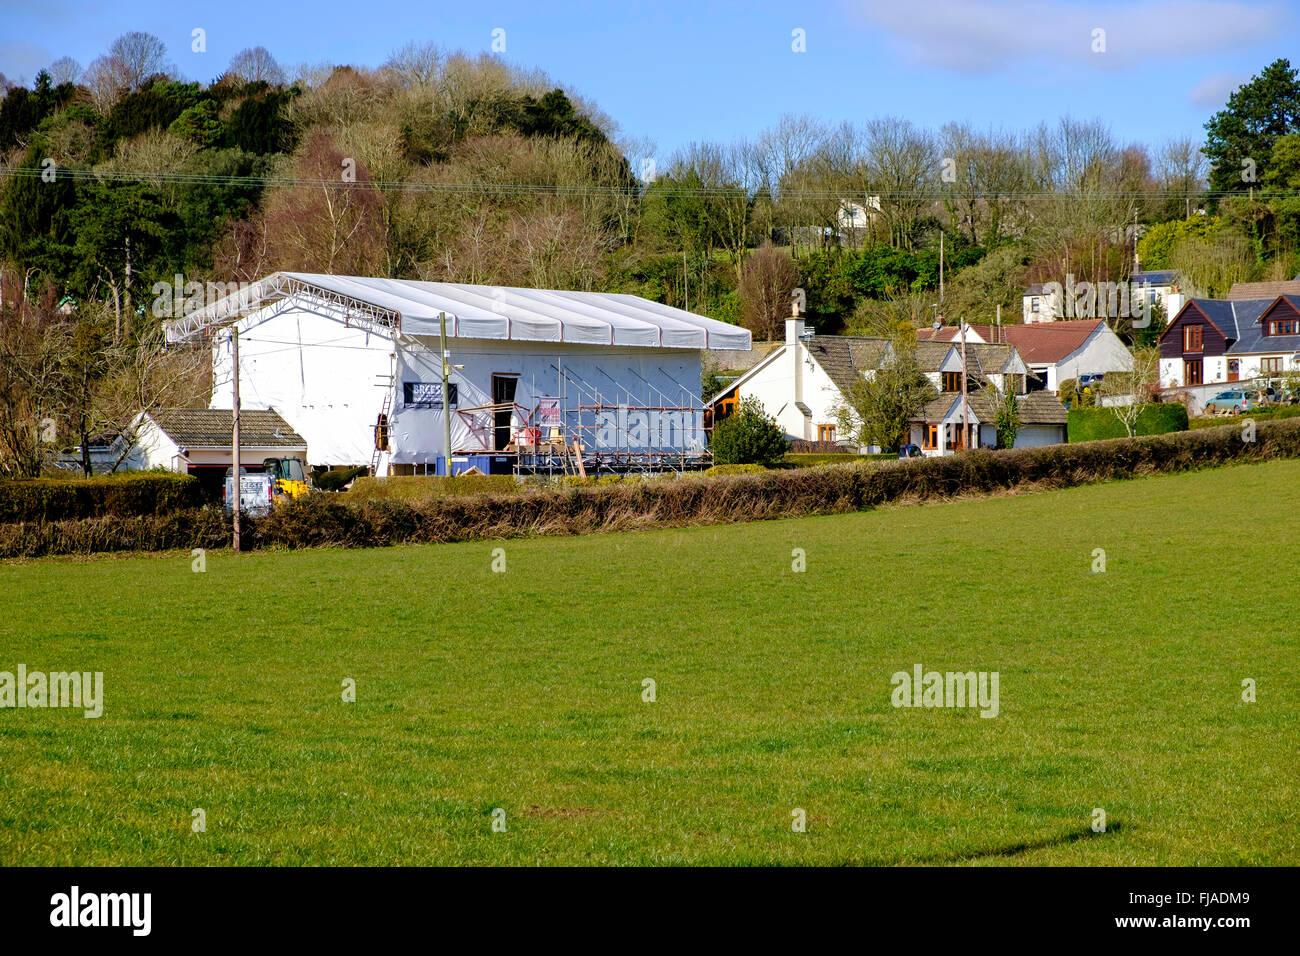 House covered in plastic sheeting while building work is going on. Scaffolding up at house. Rural hamlet Gloucestersire - Stock Image